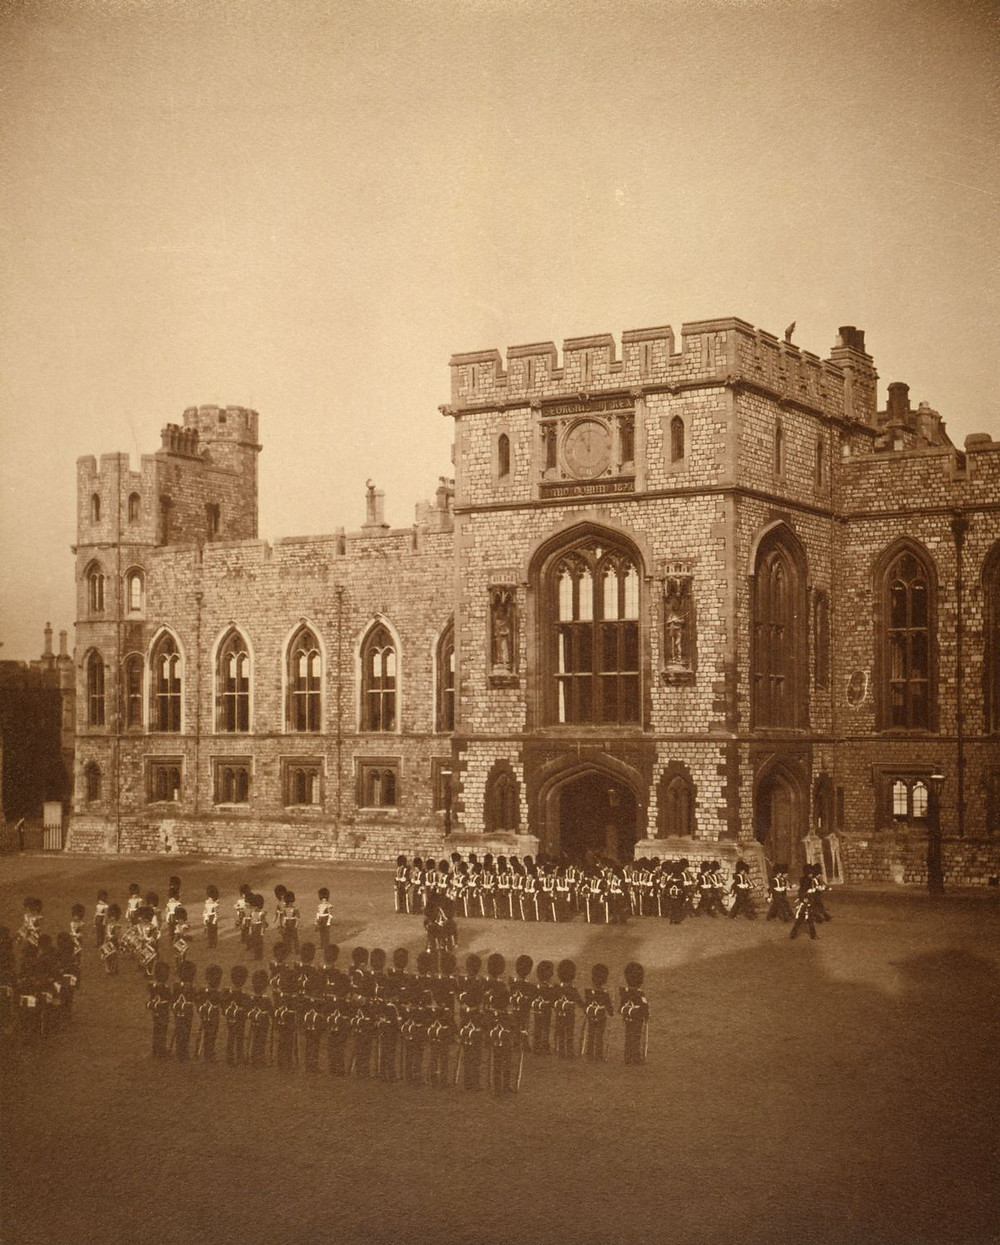 Changing the Guard at Windsor Castle c.1902 by Queen Alexandra. Royal Collection Trust/(c) Her Majesty Queen Elizabeth II 2019. Photo taken by Queen Alexandra when Princess of Wales. Historic photo of Windsor Castle